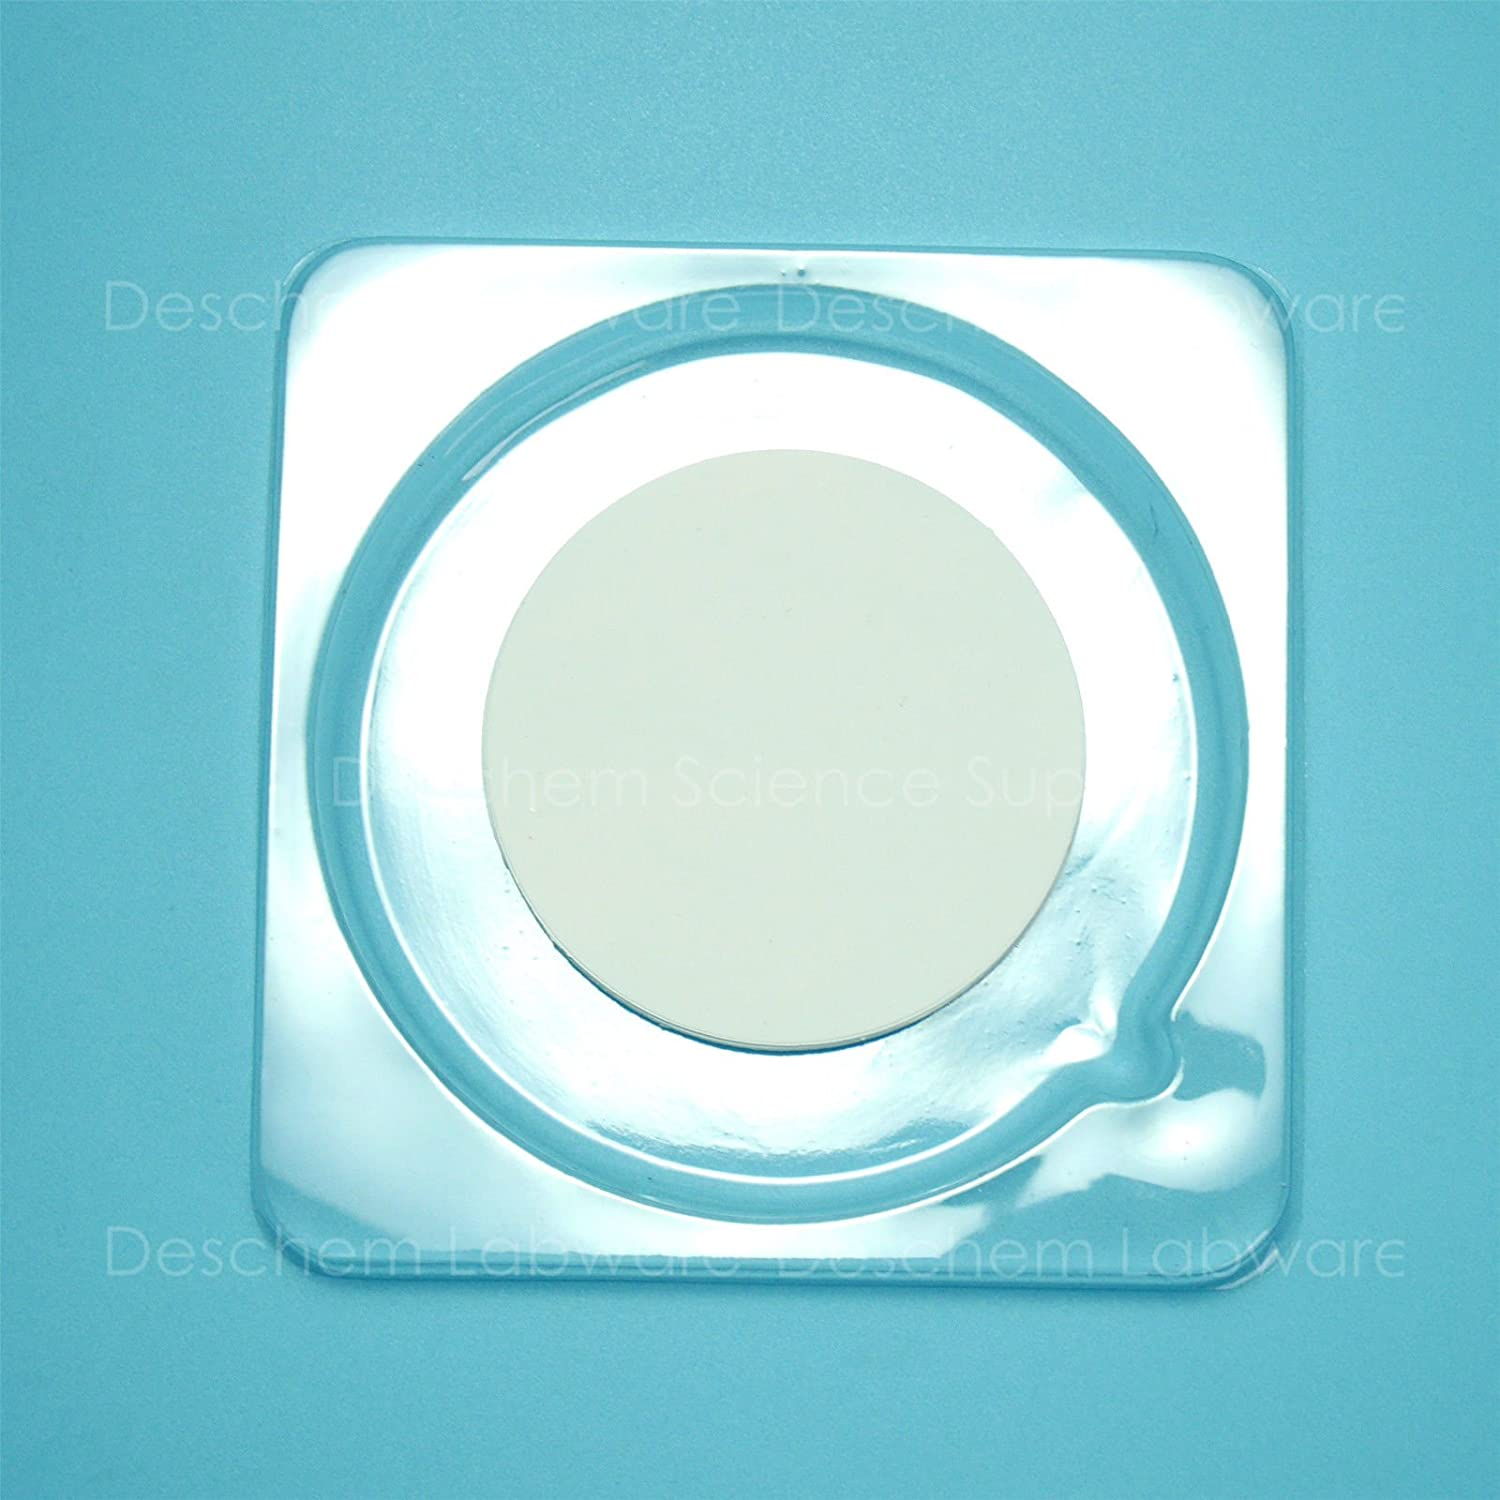 Long Beach Mall Deschem OD 90mm 0.45 Micron PTFE 50pcs Membrane Filter Pack Challenge the lowest price of Japan ☆ 9CM